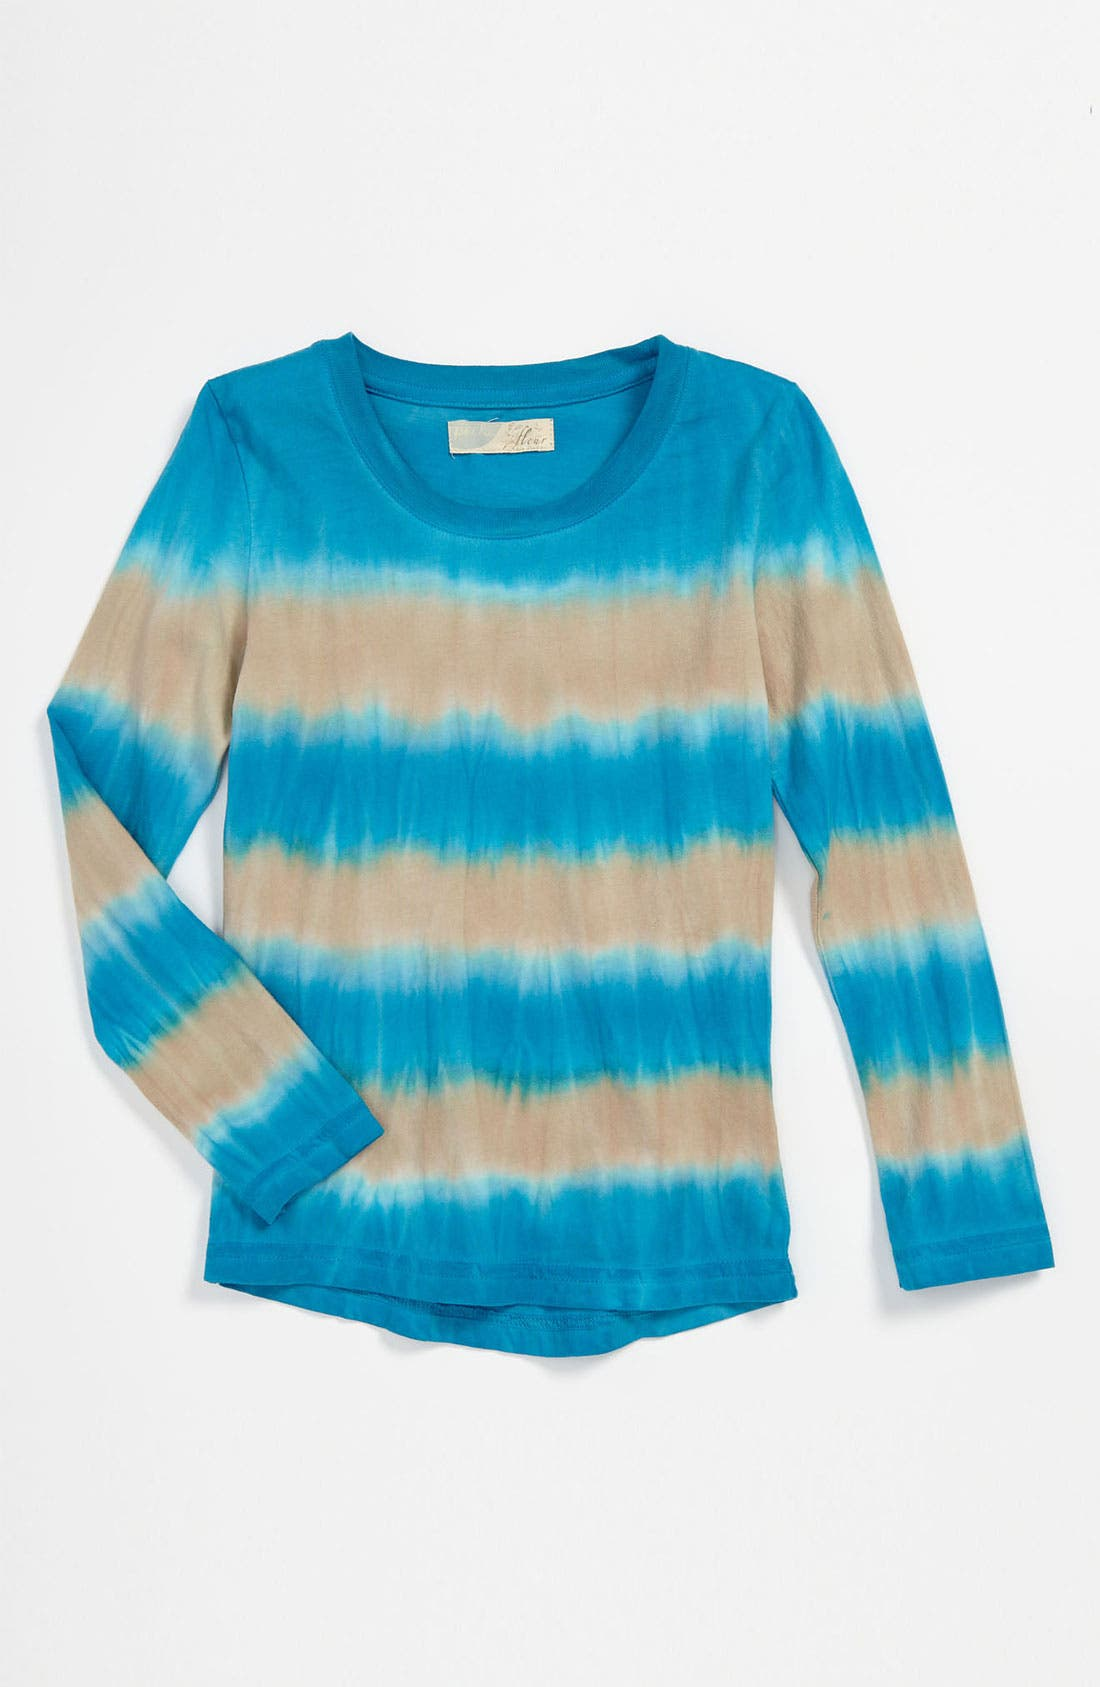 Main Image - Peek Ombré Stripe Tee (Toddler, Little Girls & Big Girls)